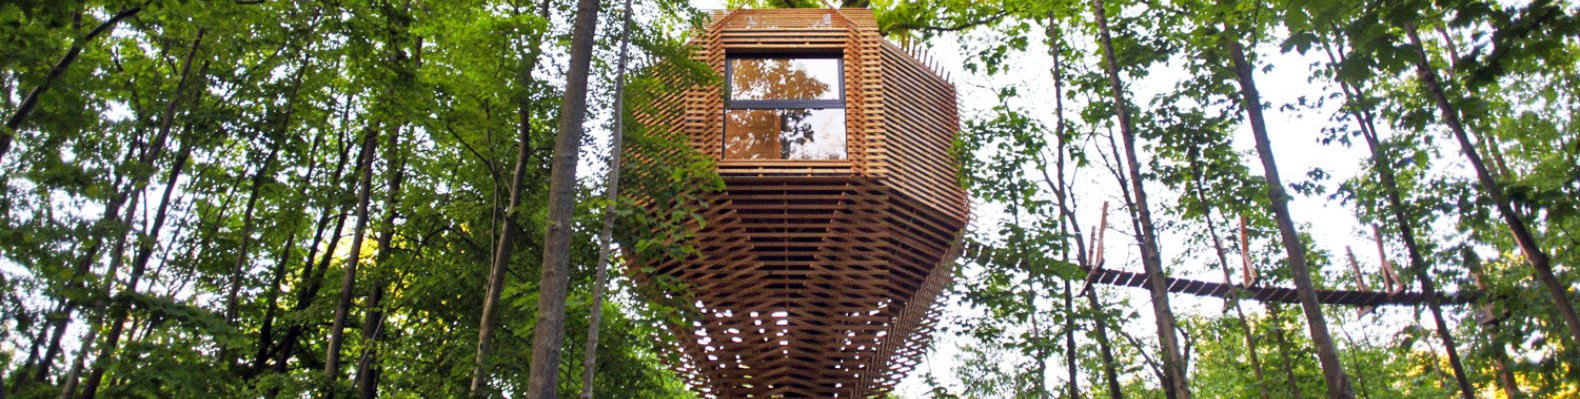 Atelier LAVIT, Origin Tree House, treehouse design, birds nest treehouse, forest treehouse, treehouse pod, spa treehouse, treehouse construction, french treehouse, sophisticated treehouse, cabin design, wooden cabins